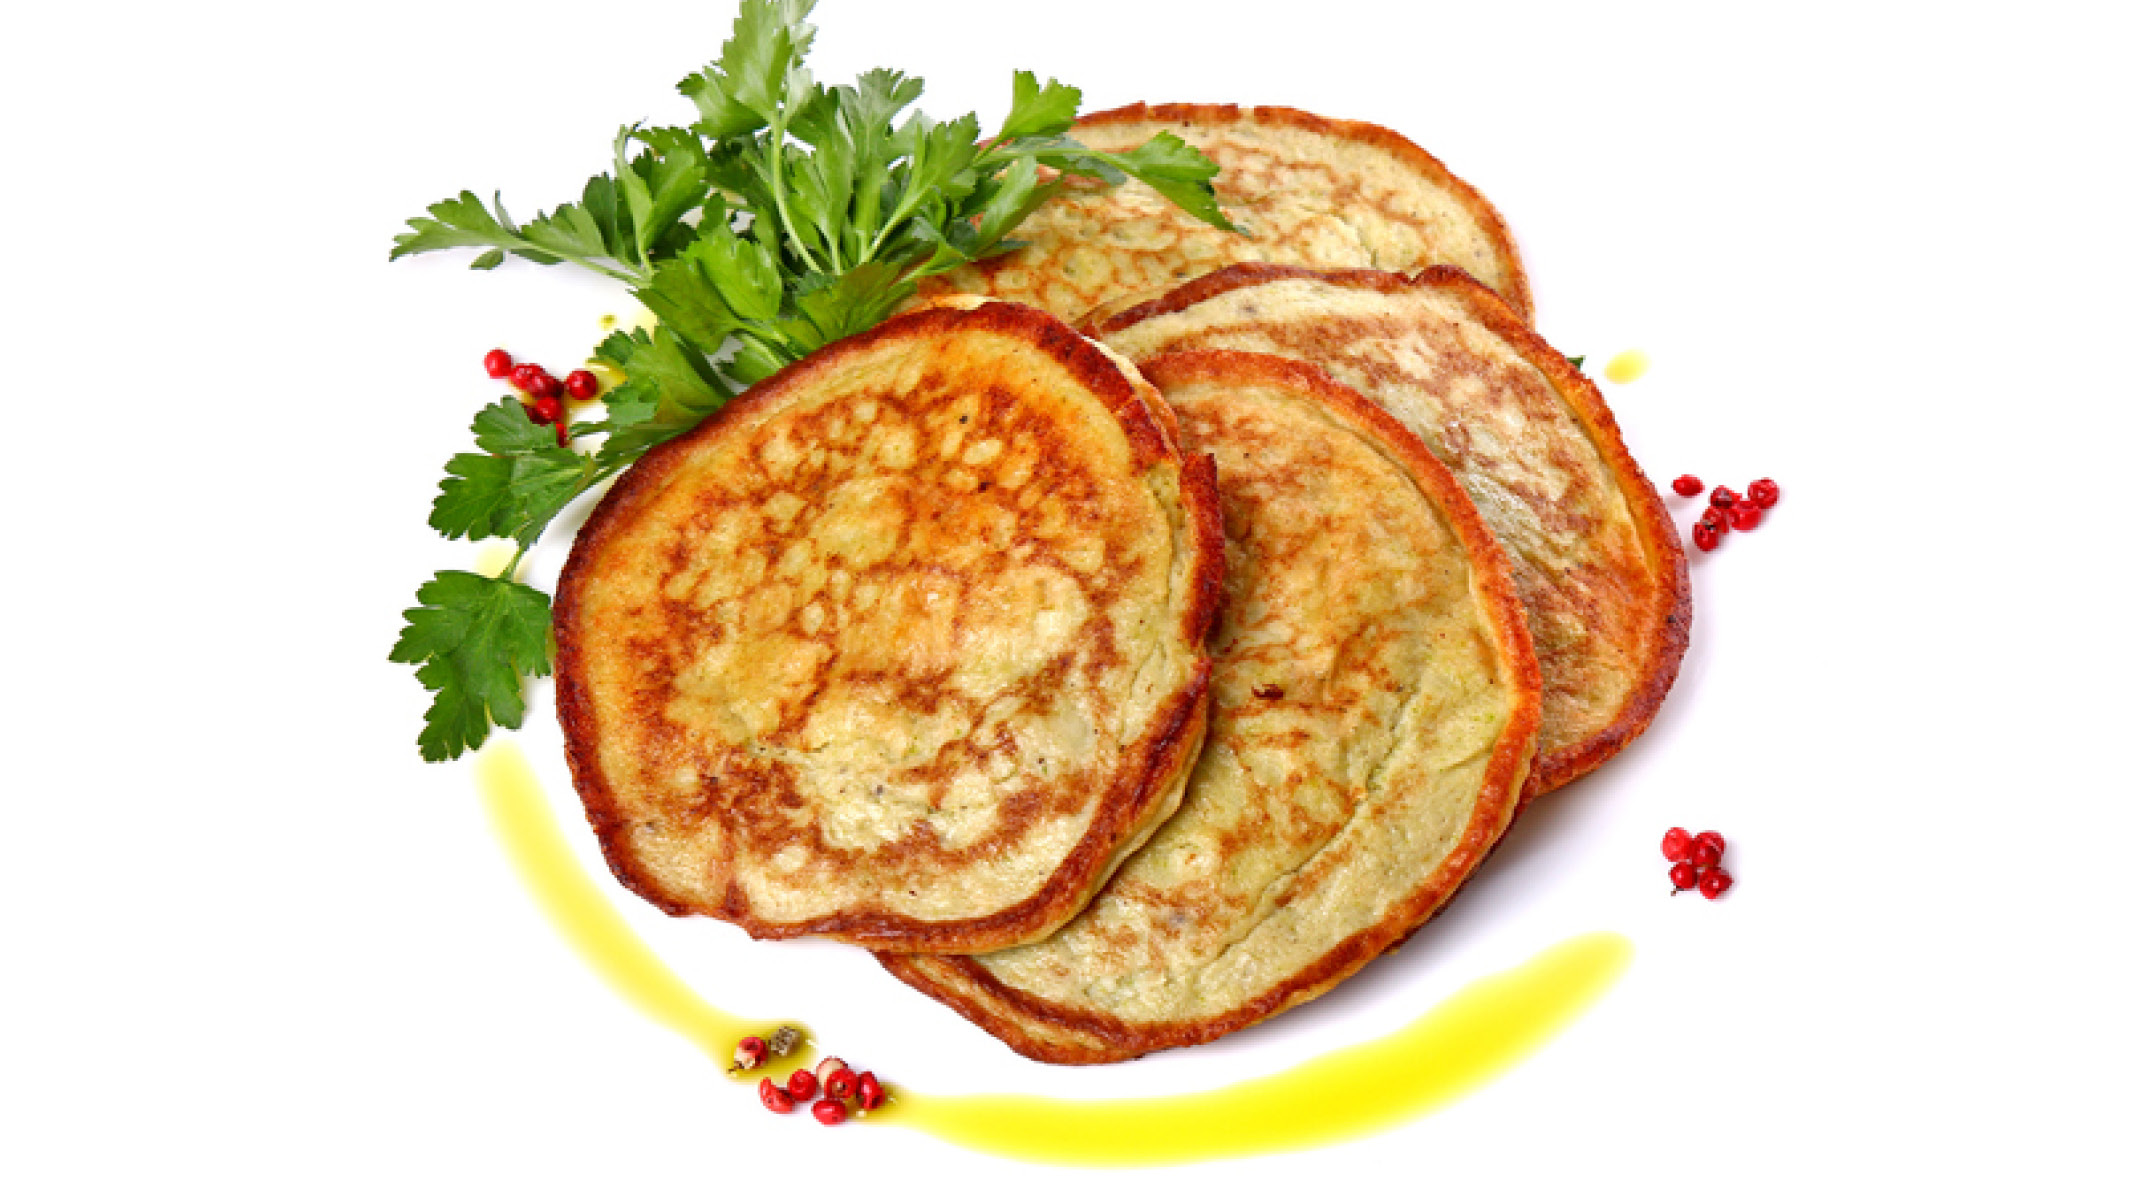 Stack of pancakes with leaf garnish - Sanford fit